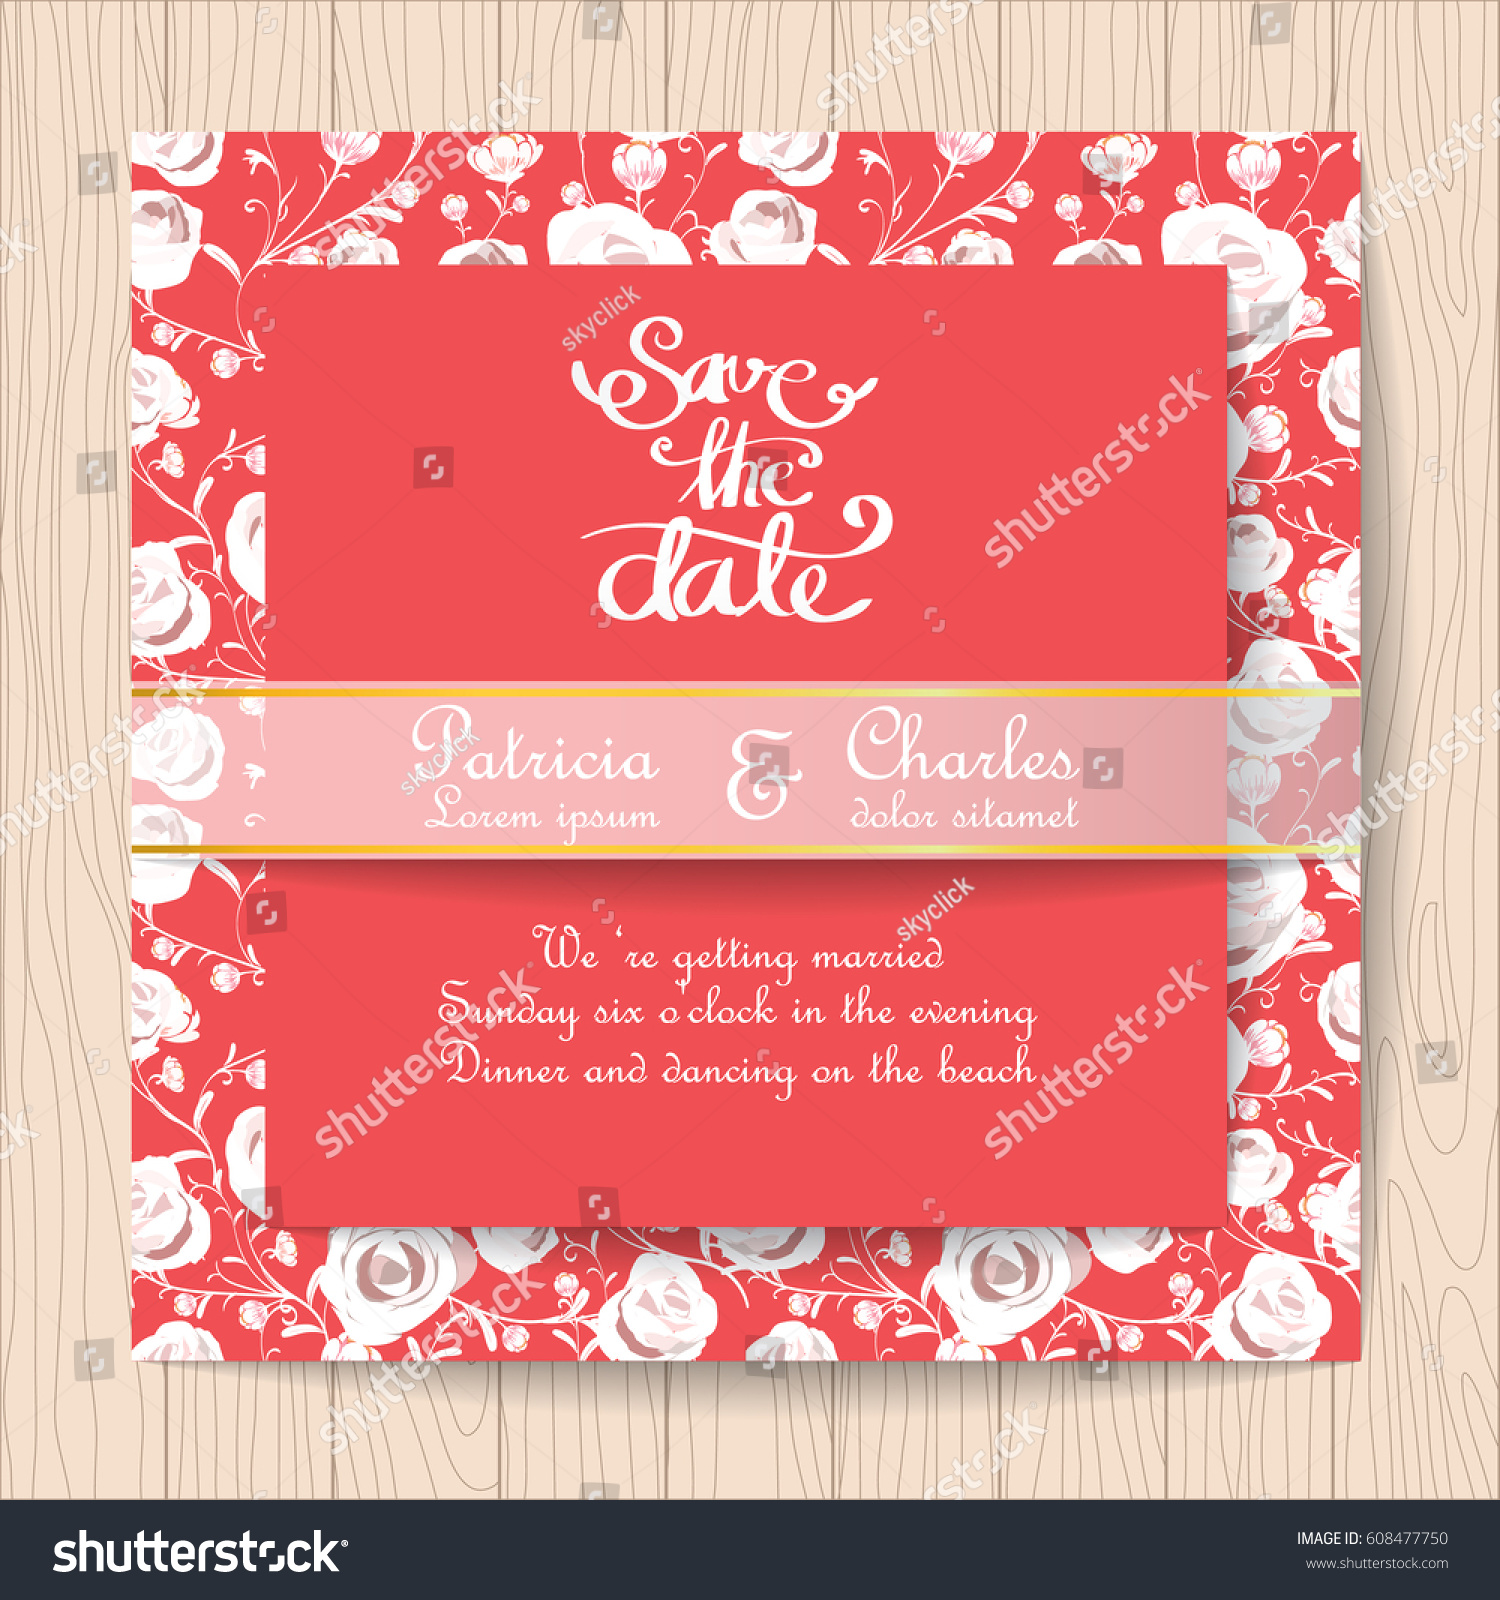 Wedding Invitation Red Card White Rose Stock Vector (Royalty Free ...